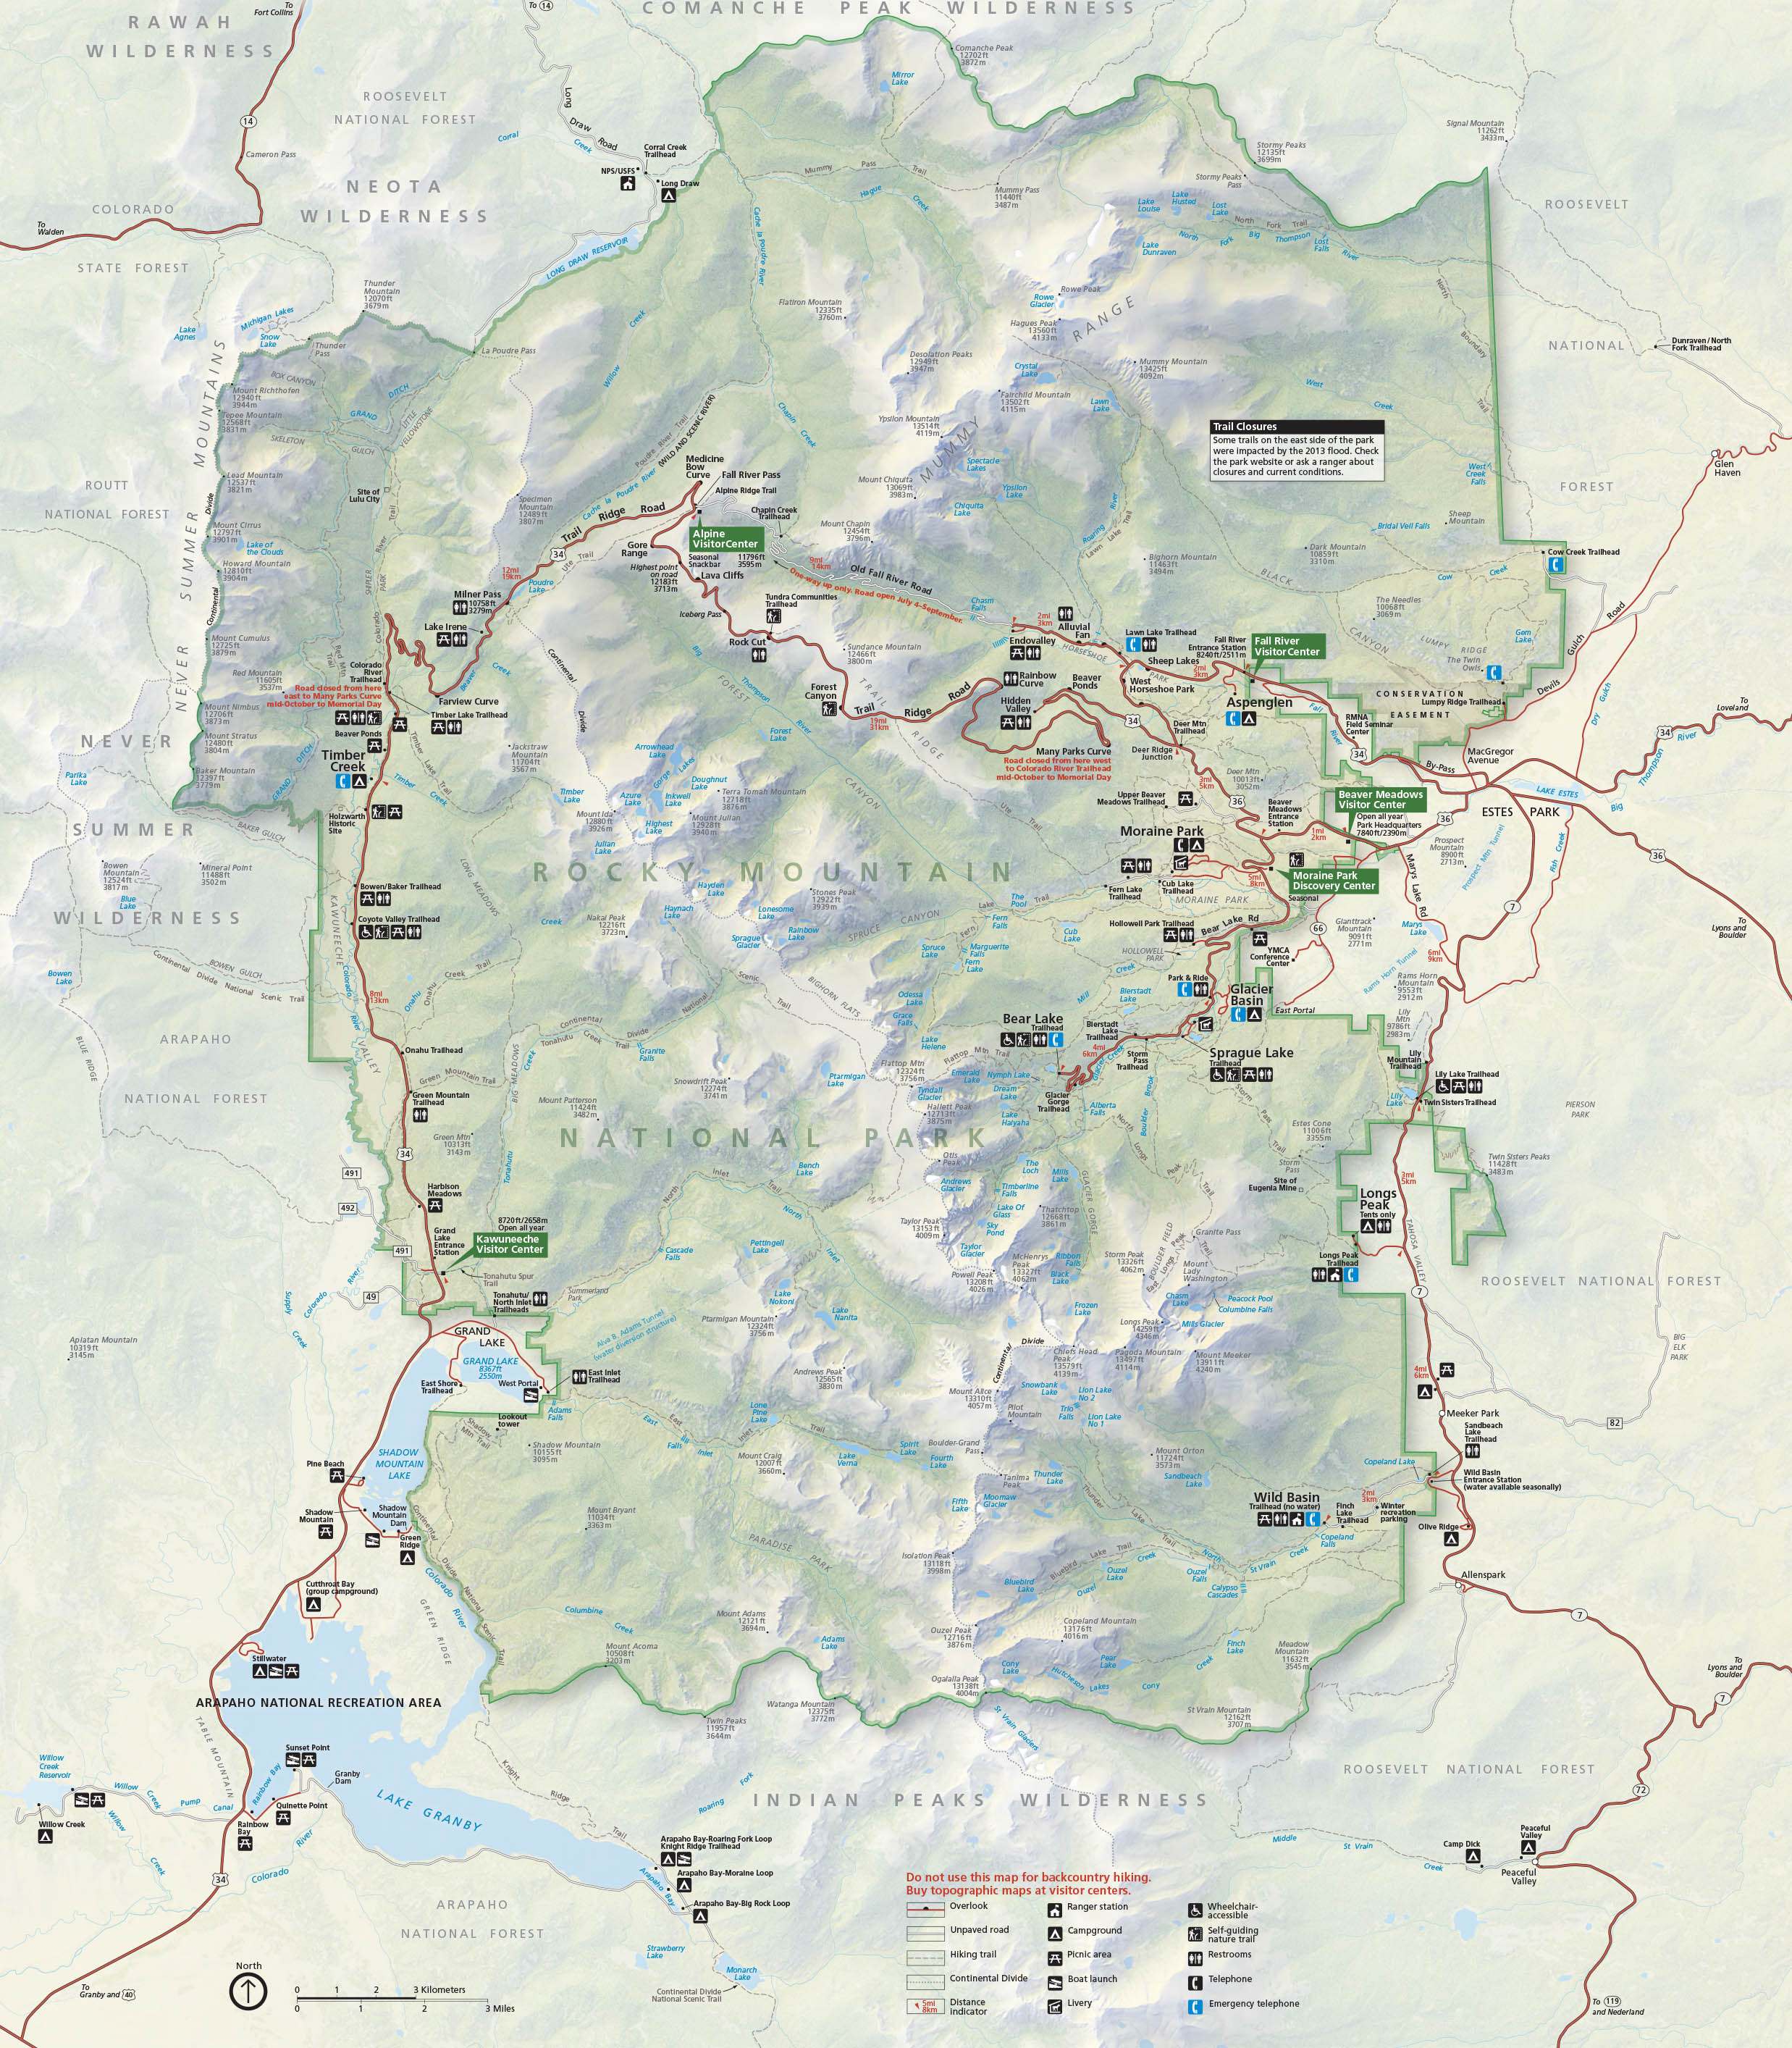 Map Of Rocky Mountain National Park Brochures   Rocky Mountain National Park (U.S. National Park Service)